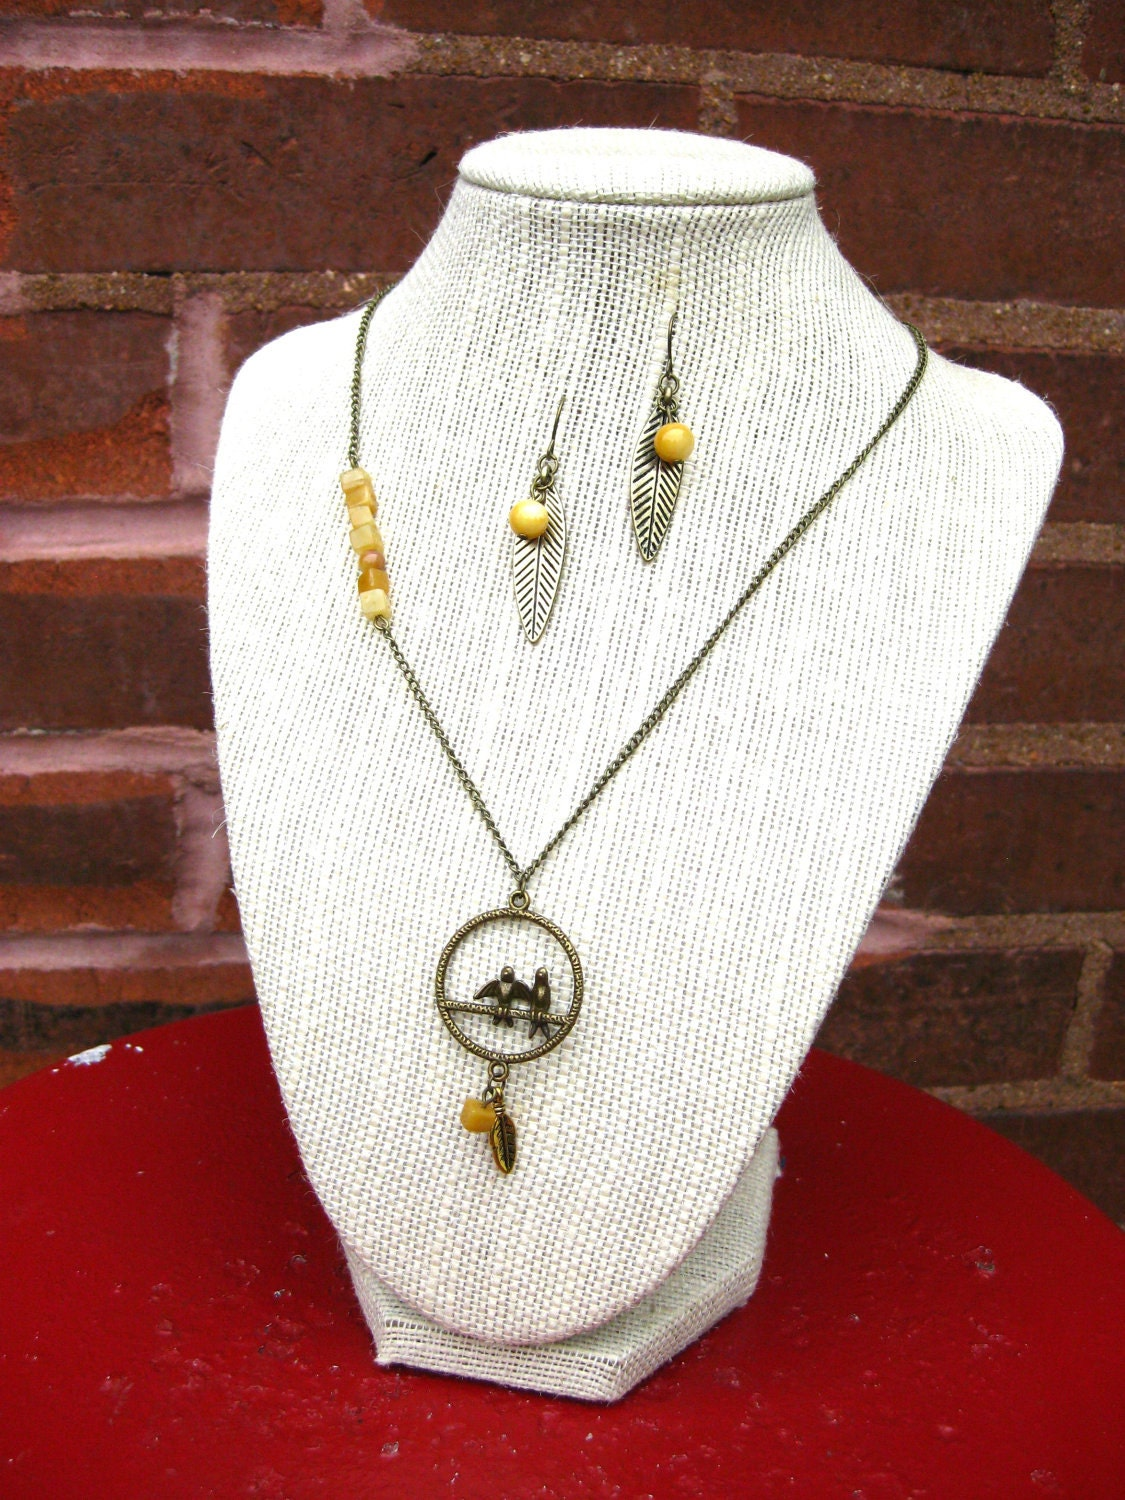 Bird Necklace and Earrings, Jewelry Set, Gift Set, Yellow Stone Beads